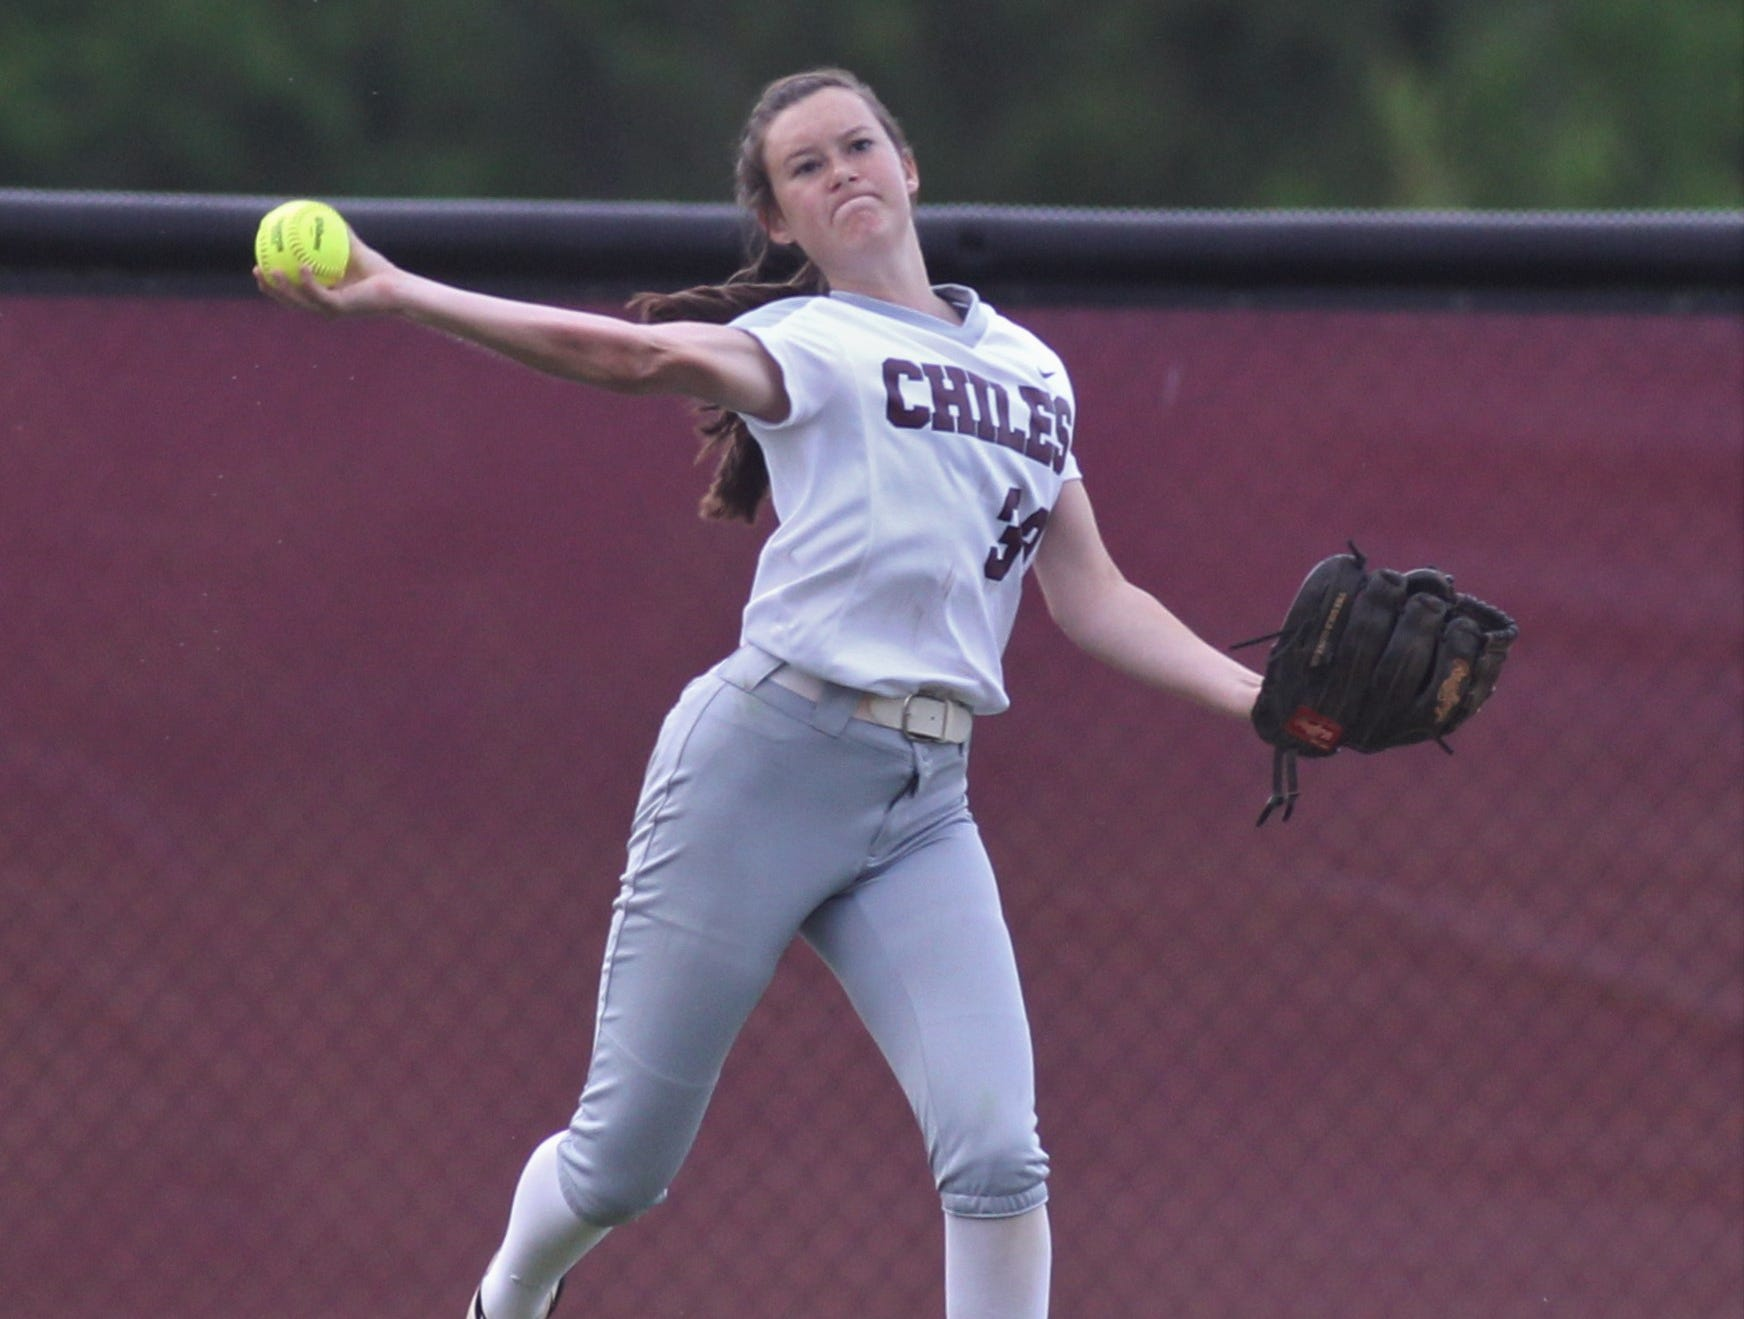 Chiles outfielder Meghan Lucas throws a back back to the infield as the Timberwolves beat Atlantic Coast 6-4 during a Region 1-8A quarterfinal softball game on Wednesday, May 8, 2019.